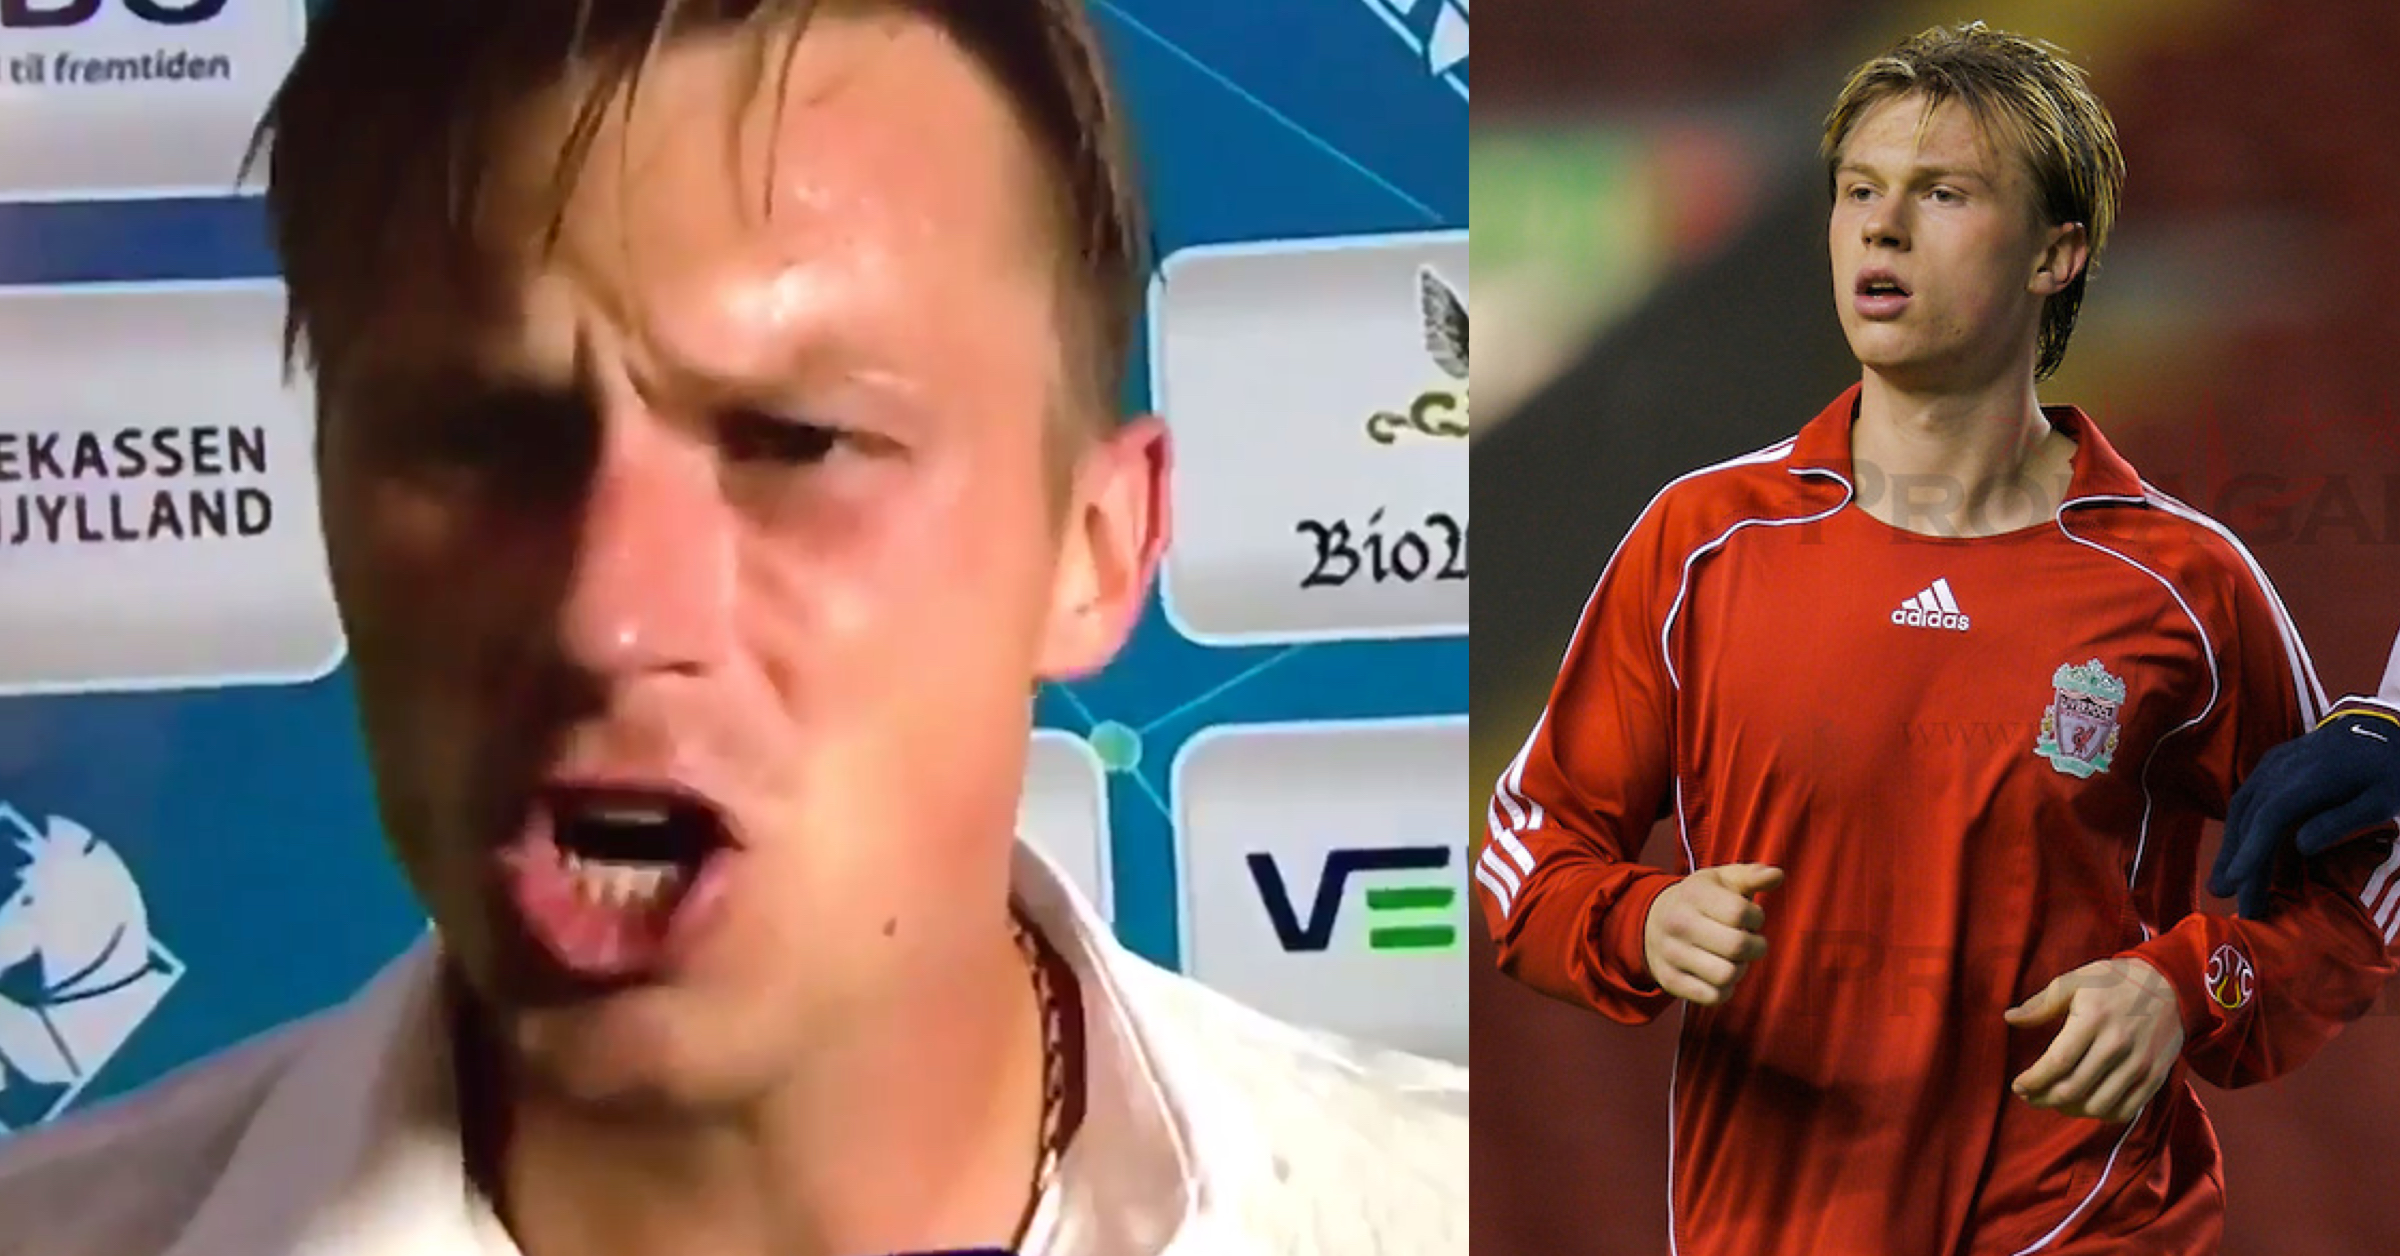 WATCH: Former Liverpool Player Loses His Mind In Explicit Explosive Post Match Rant